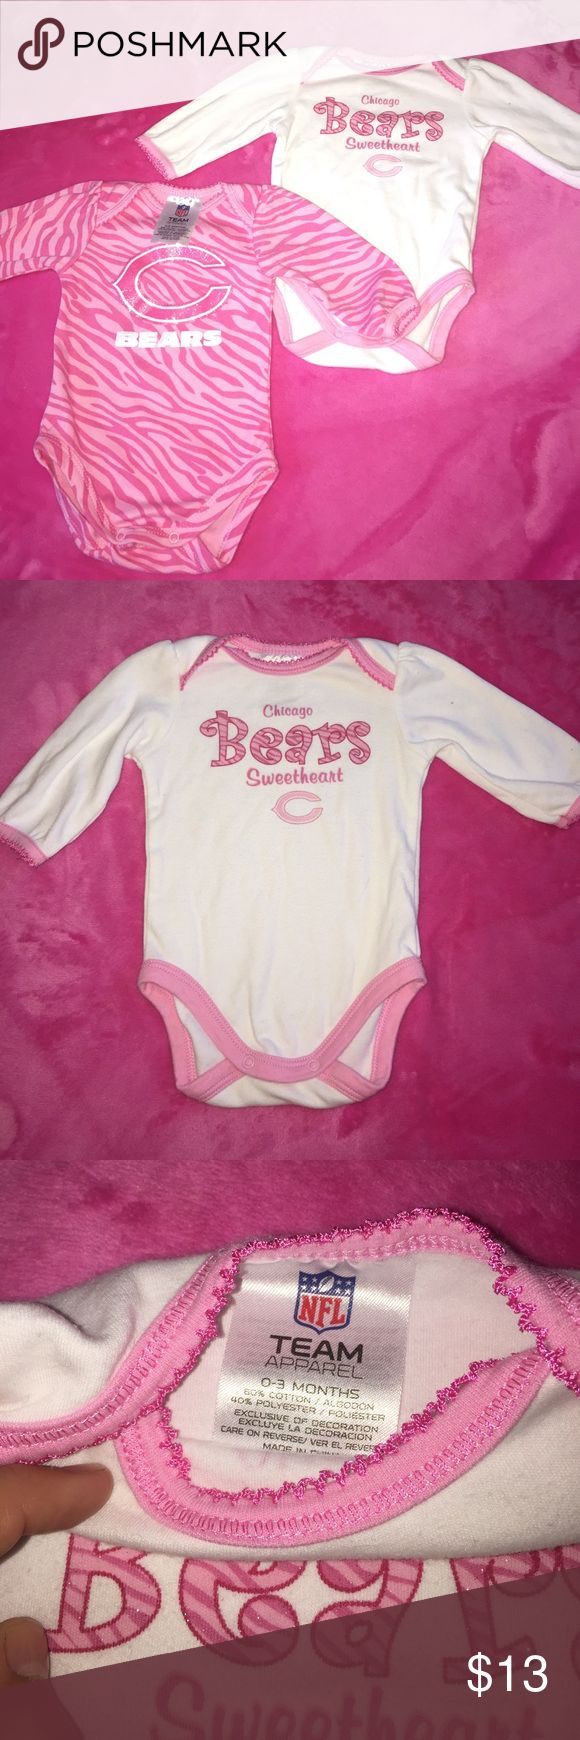 Chicago Bears 0-3 Months onezies 2 onezies for the price of 1! Brand is original NFL team apparel 🌸 nfl team apparel  One Pieces Bodysuits